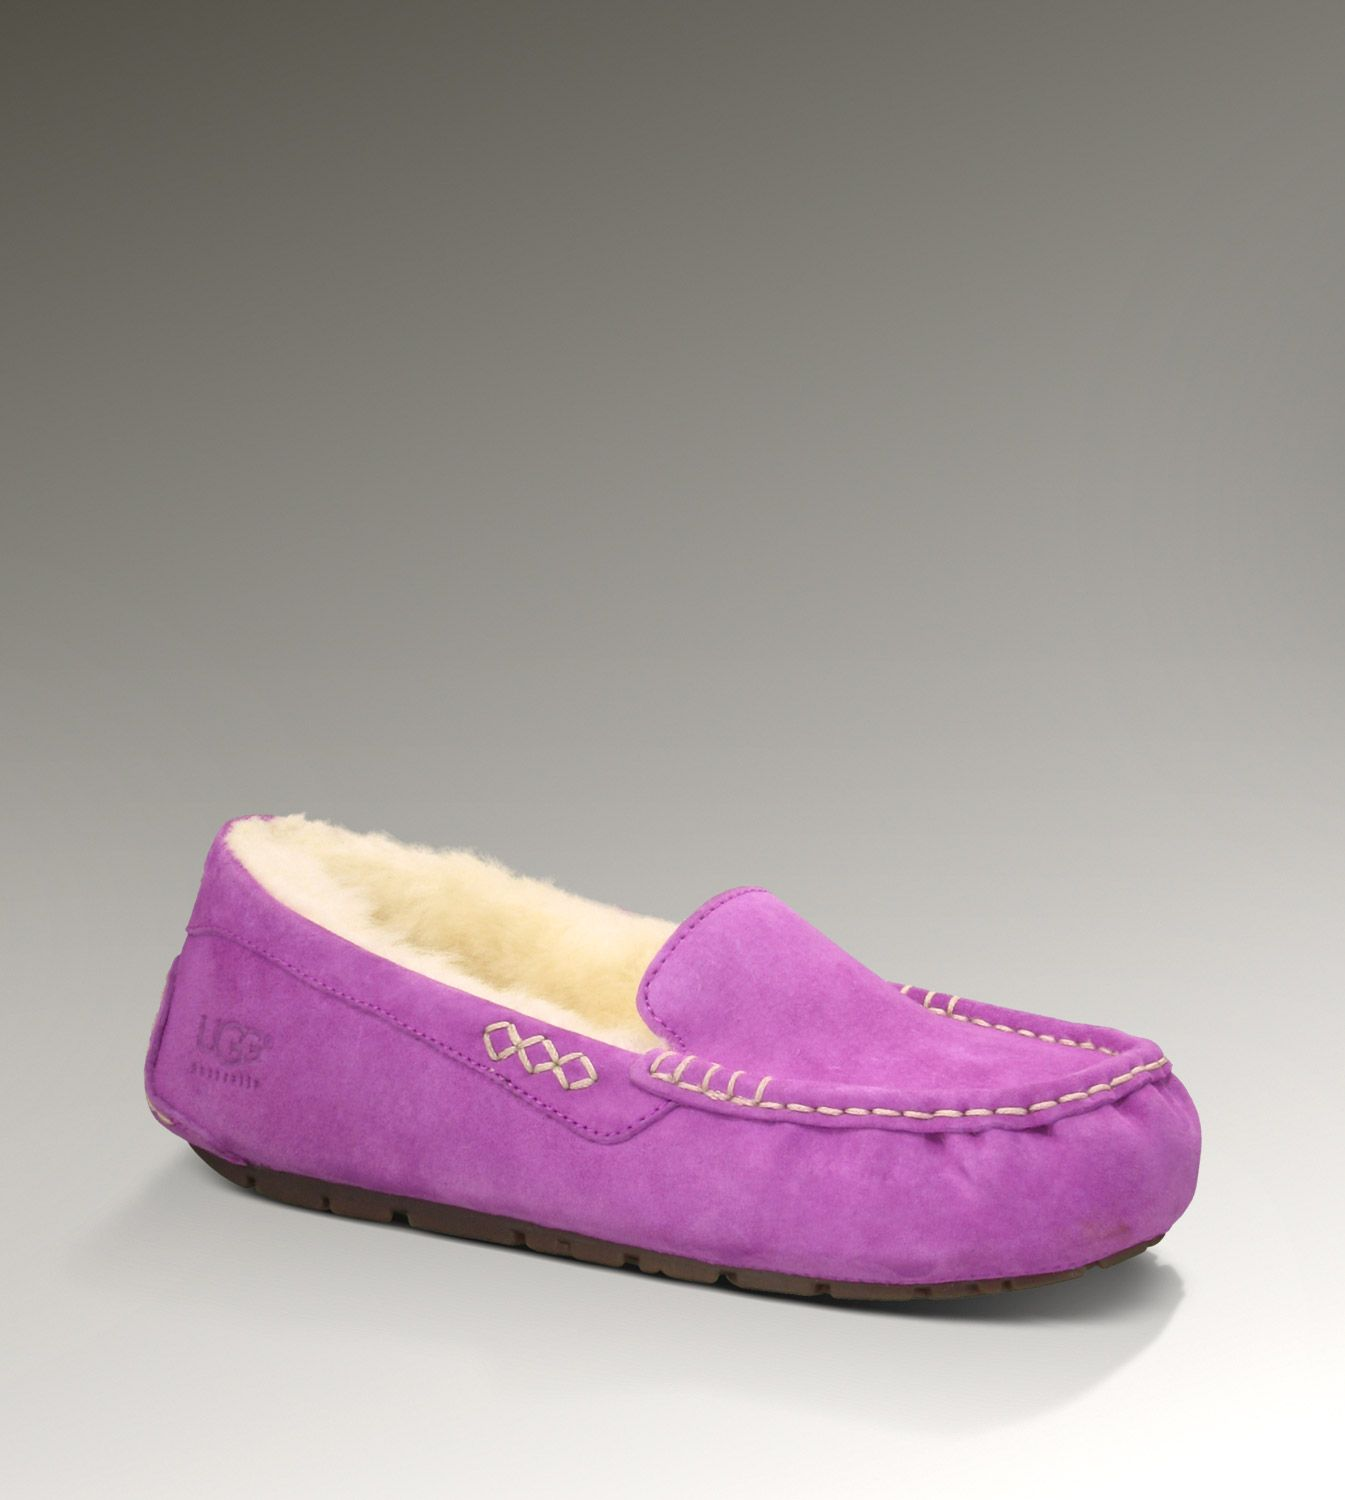 025c9d4ff37 Women's Share this product Ansley Slipper | Christmas Present Ideas ...